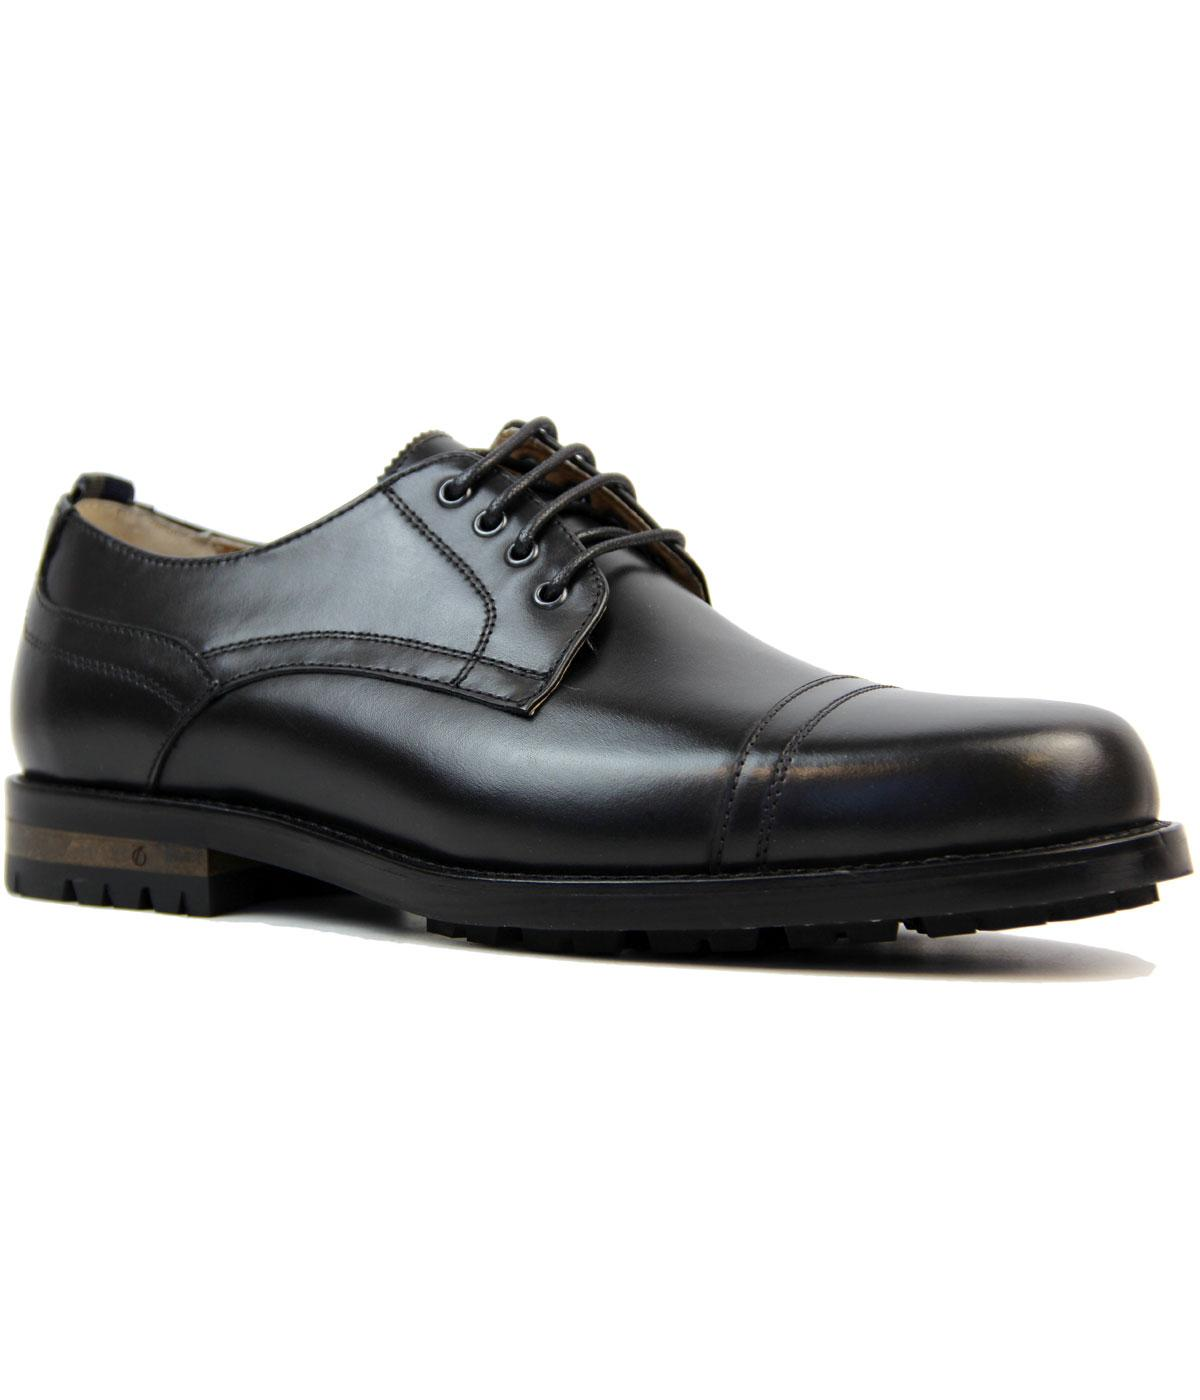 Hardy PETER WERTH Retro Mod Mens Derby Shoes